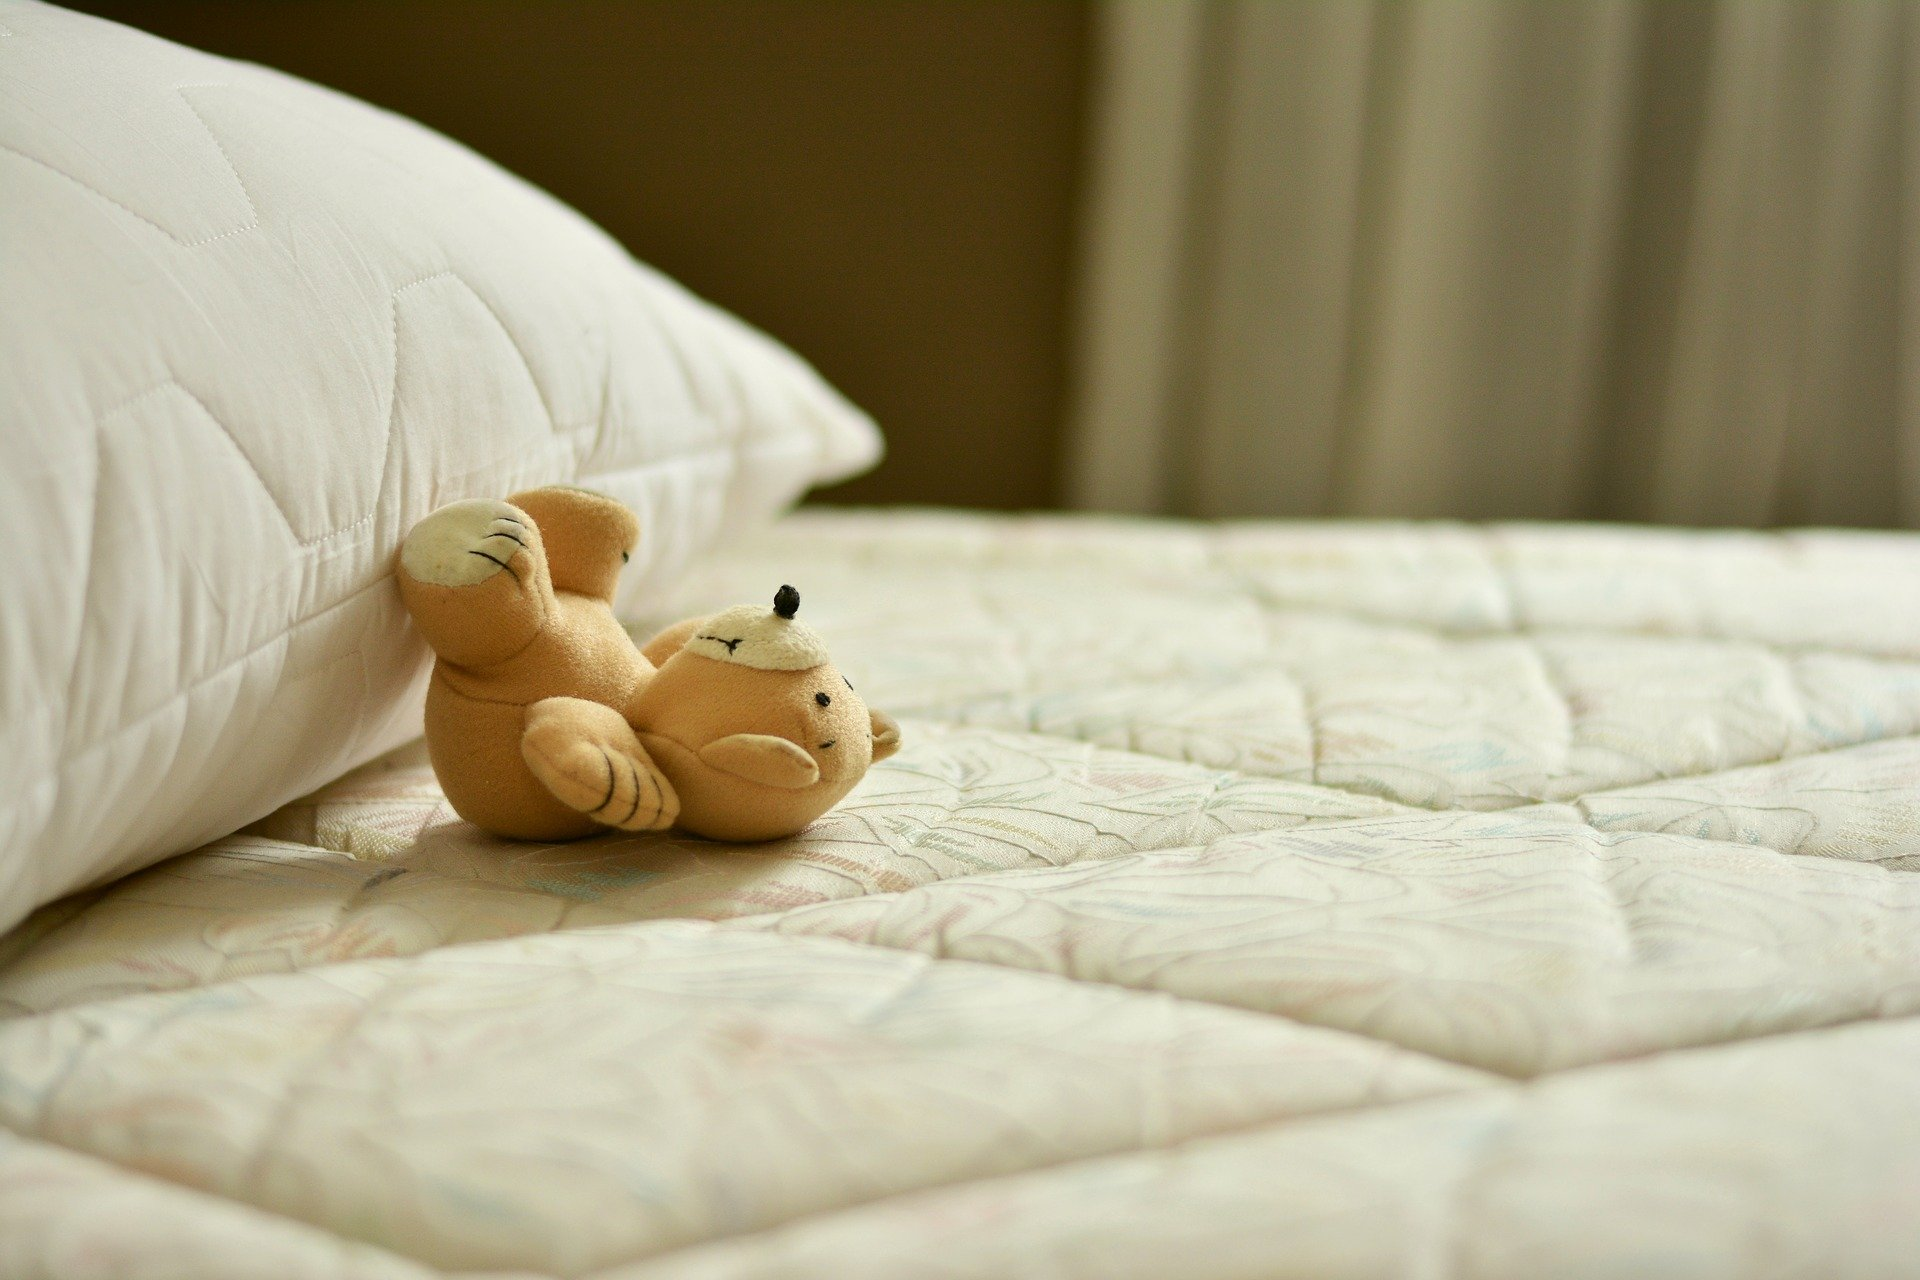 Effective ways to get rid of bed bugs naturally